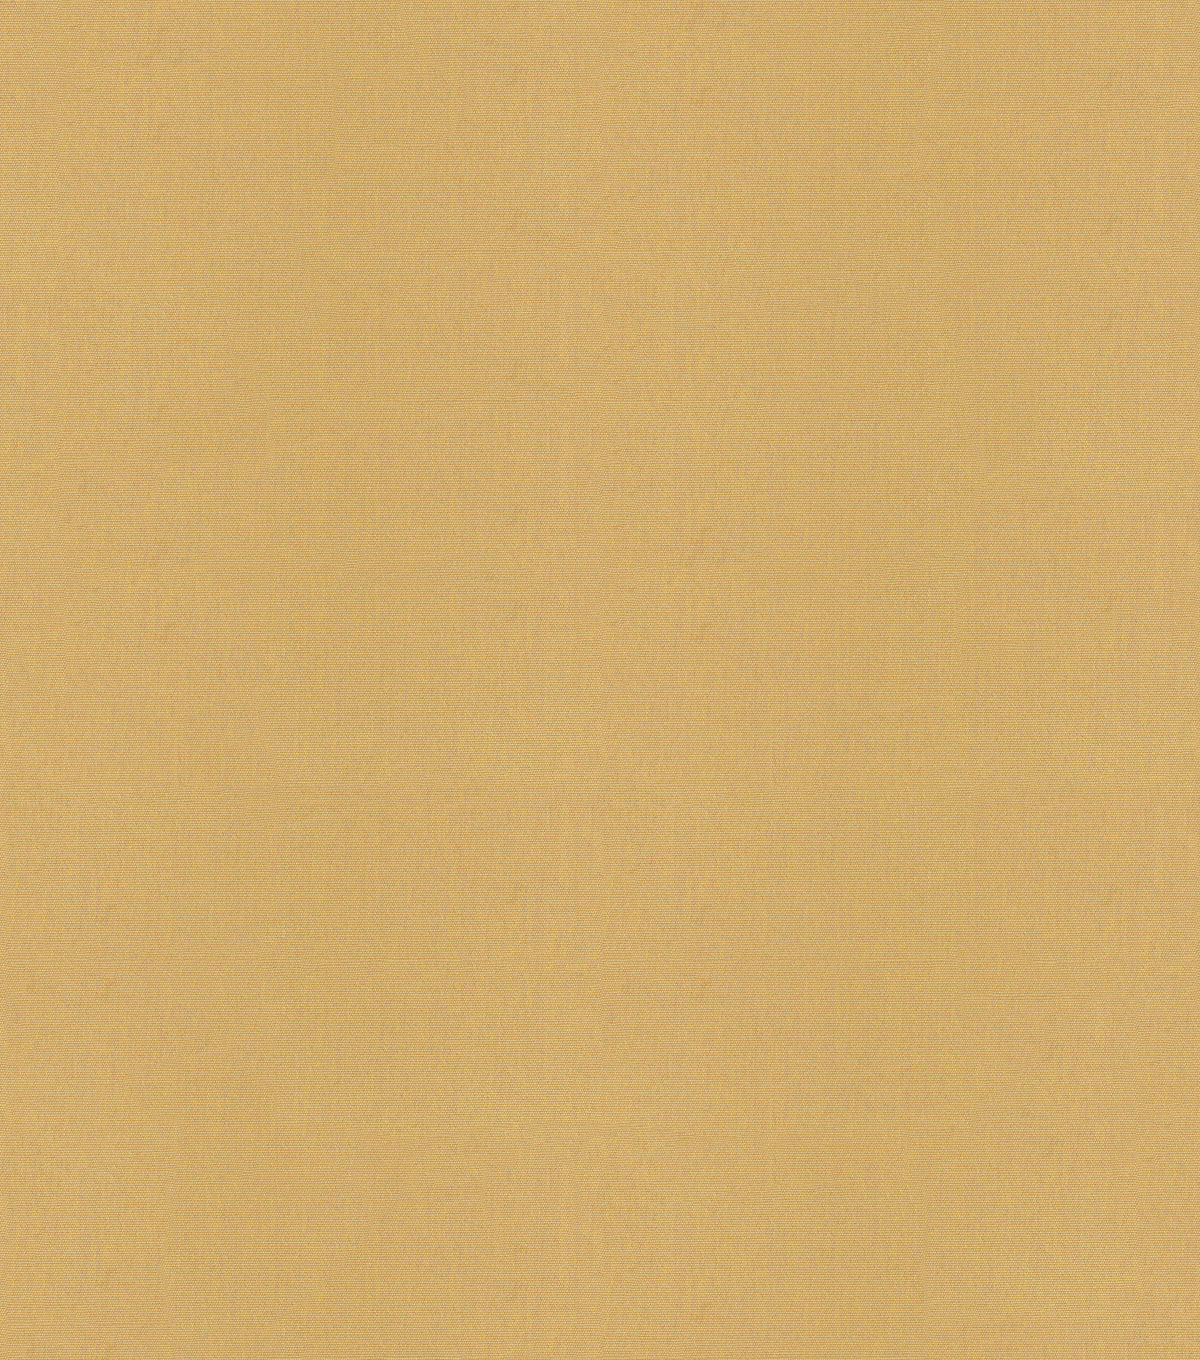 Sunbrella Outdoor Solid Canvas Fabric 54\u0022-Brass